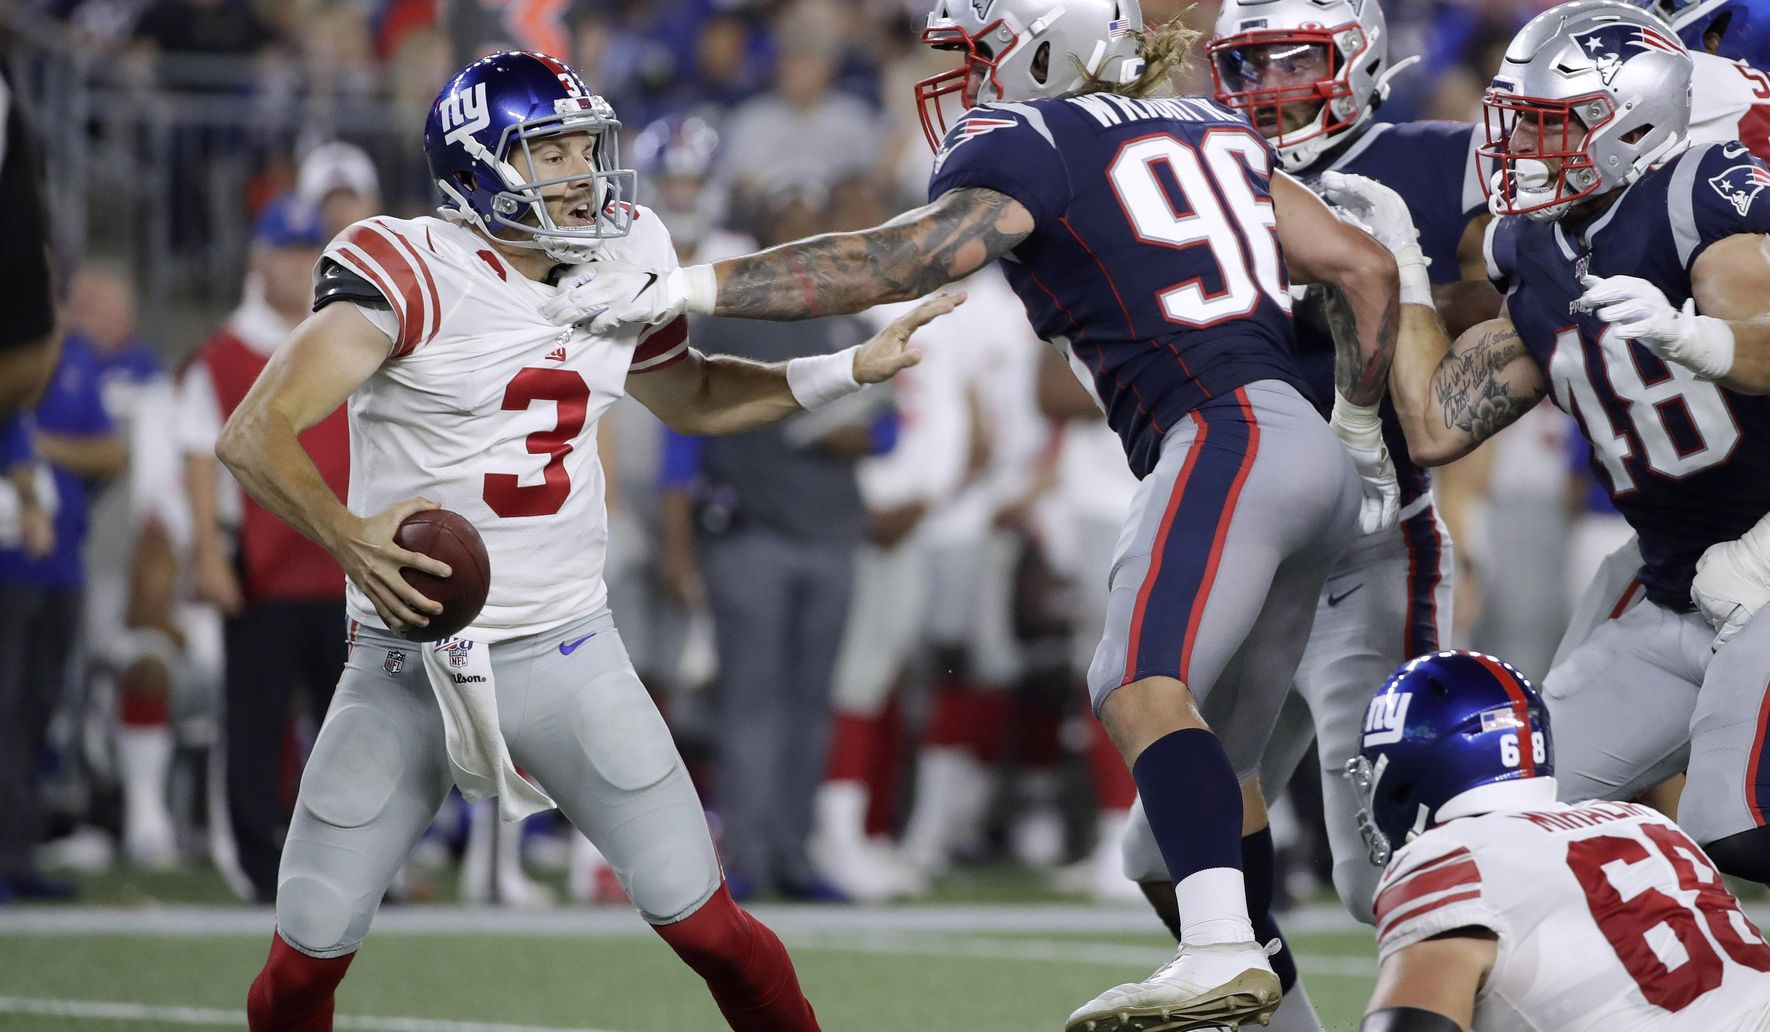 Giants_patriots_football_68519_c0-296-4288-2796_s1770x1032